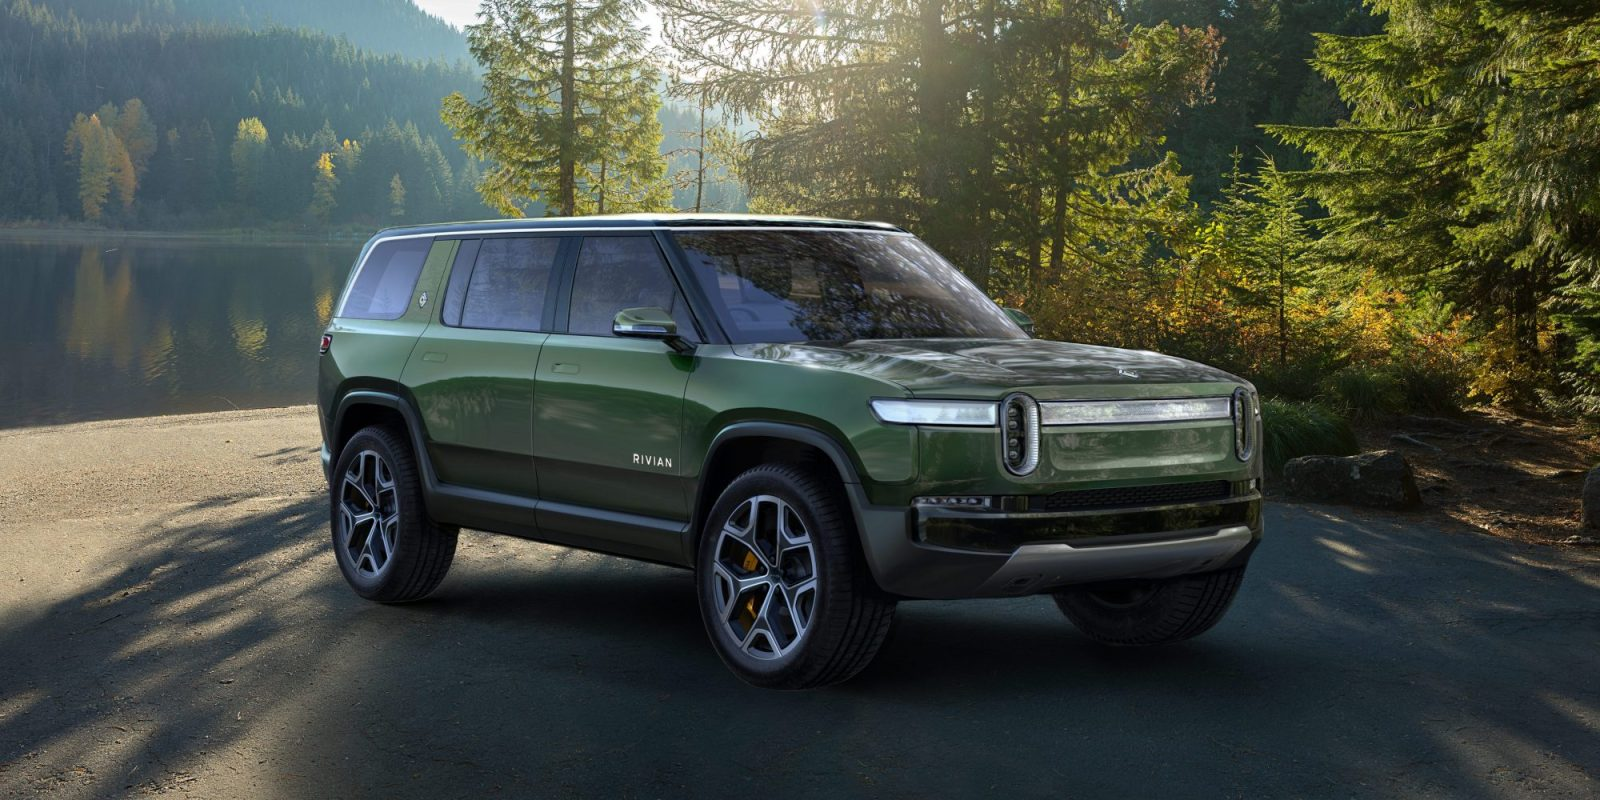 Lincoln will build an electric SUV based on Rivian's chassis